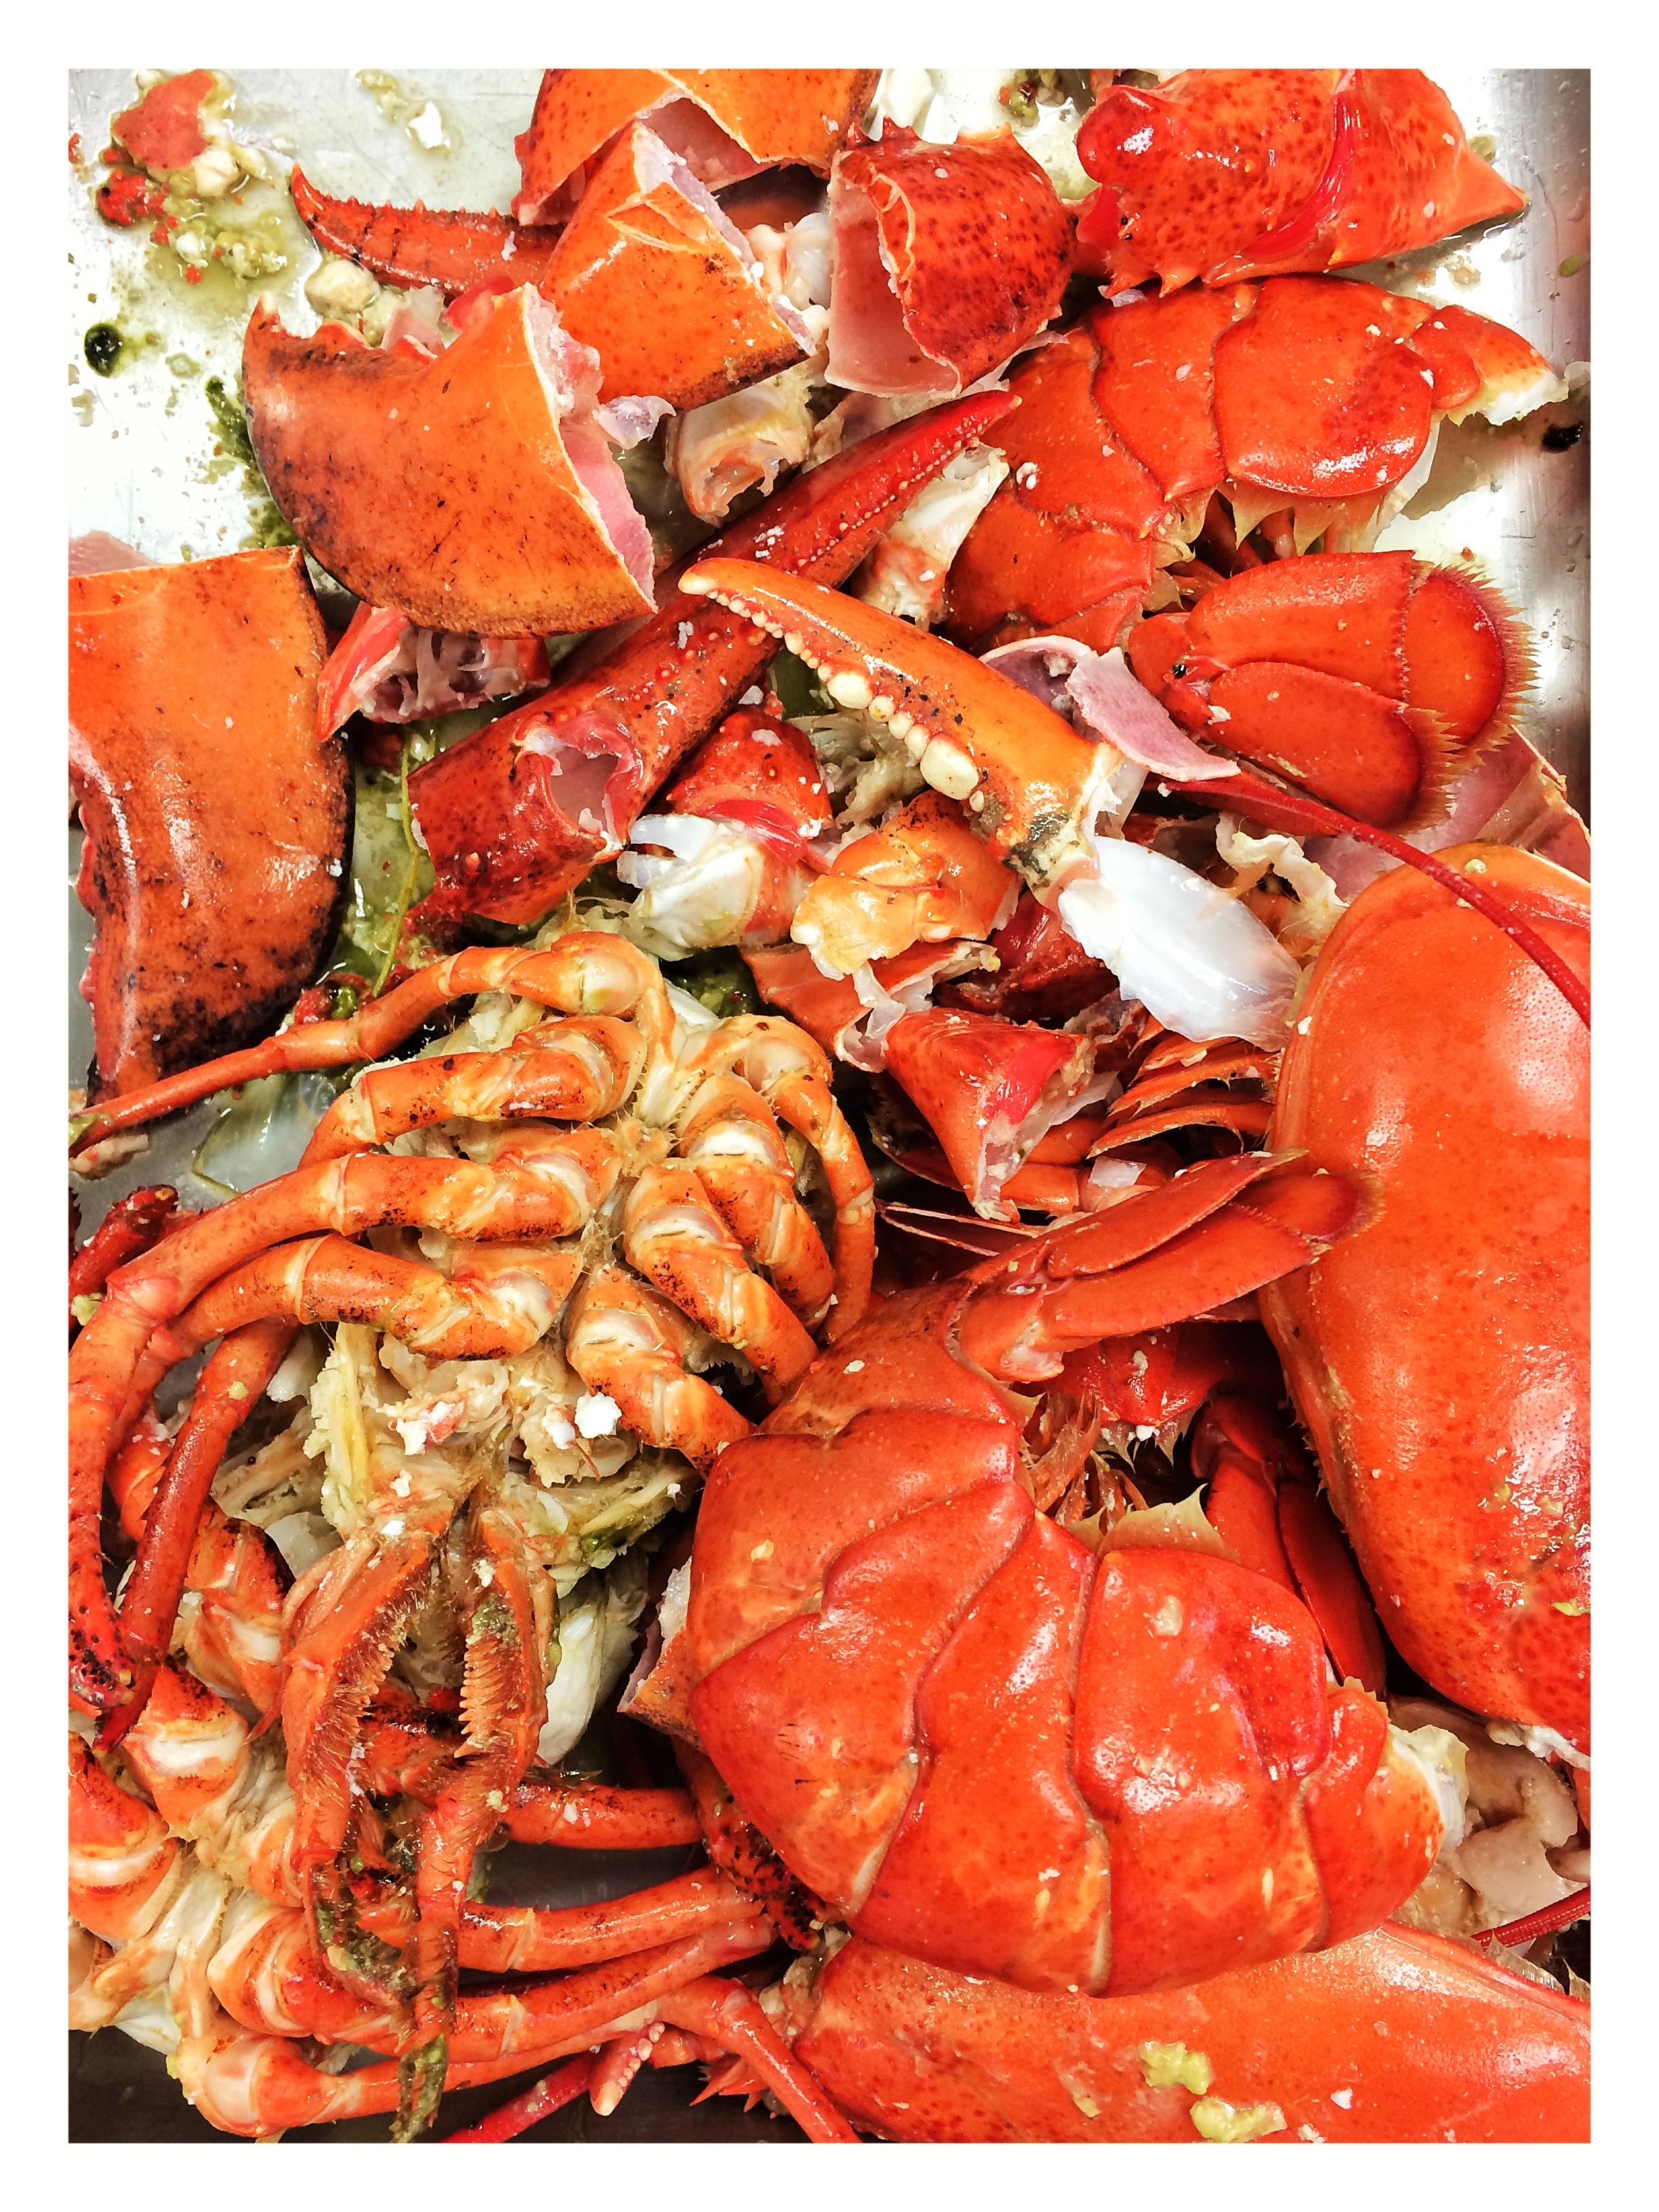 The empty lobster shells are picked clean of their meat and then used for stock